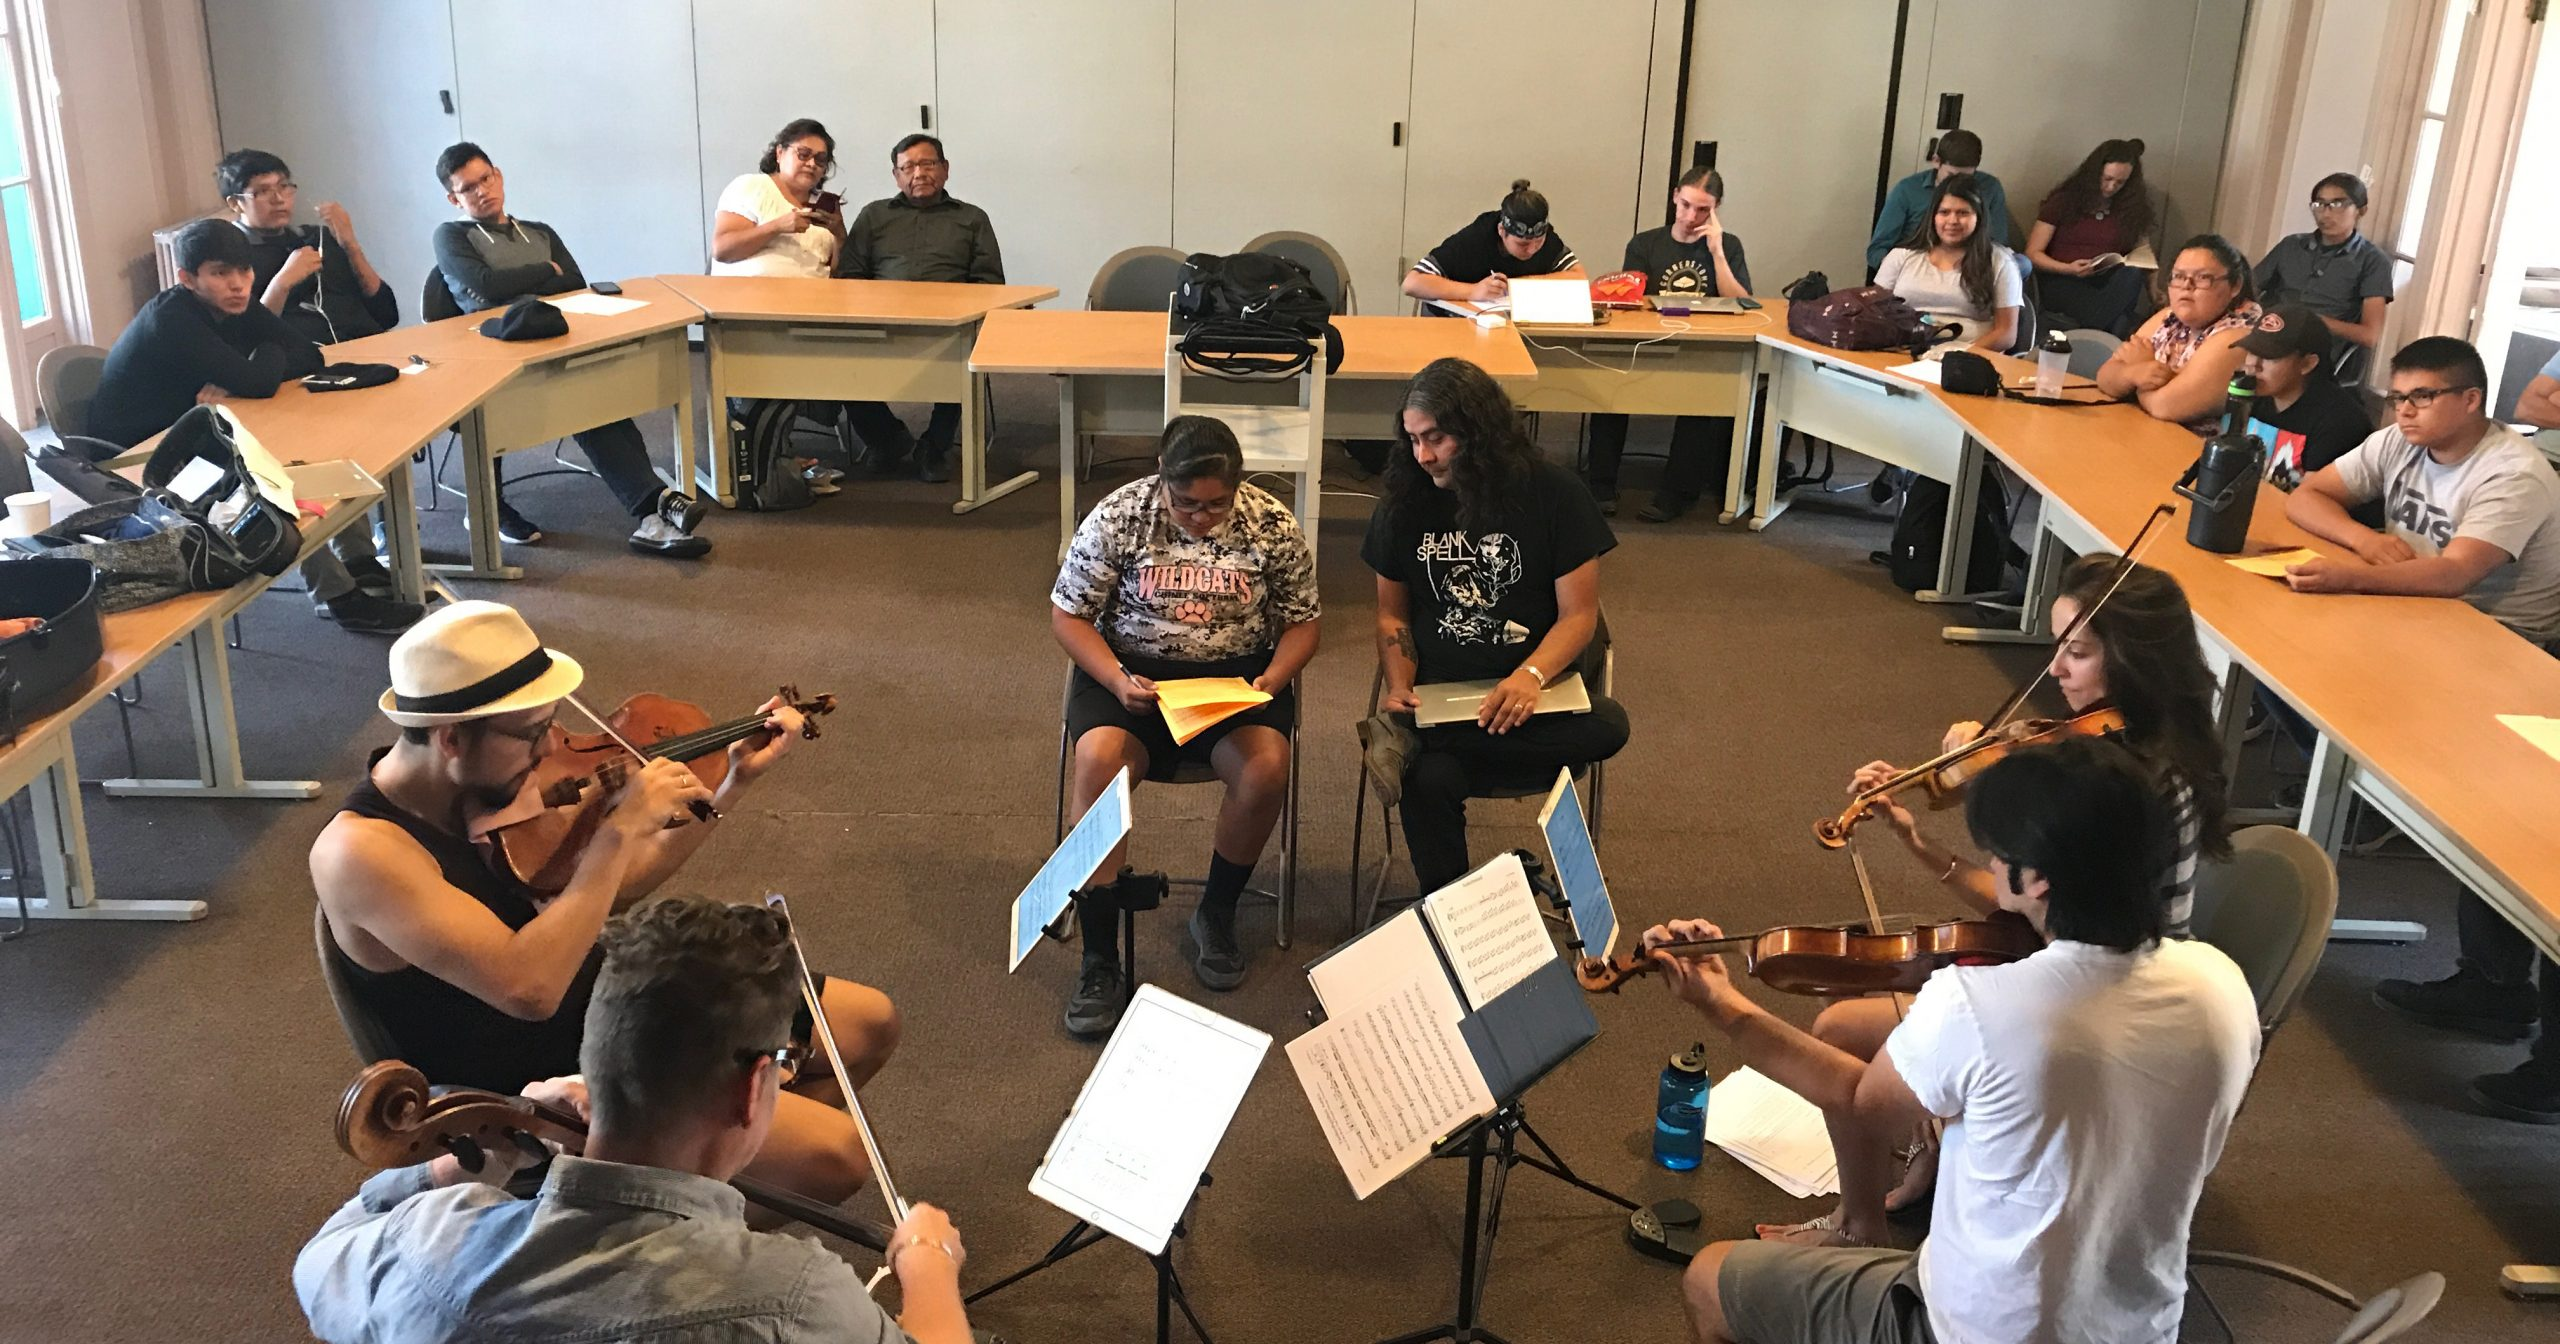 The four musicians of a string quartet, a composer and a mentor sit in the middle of a circle surrounded by students